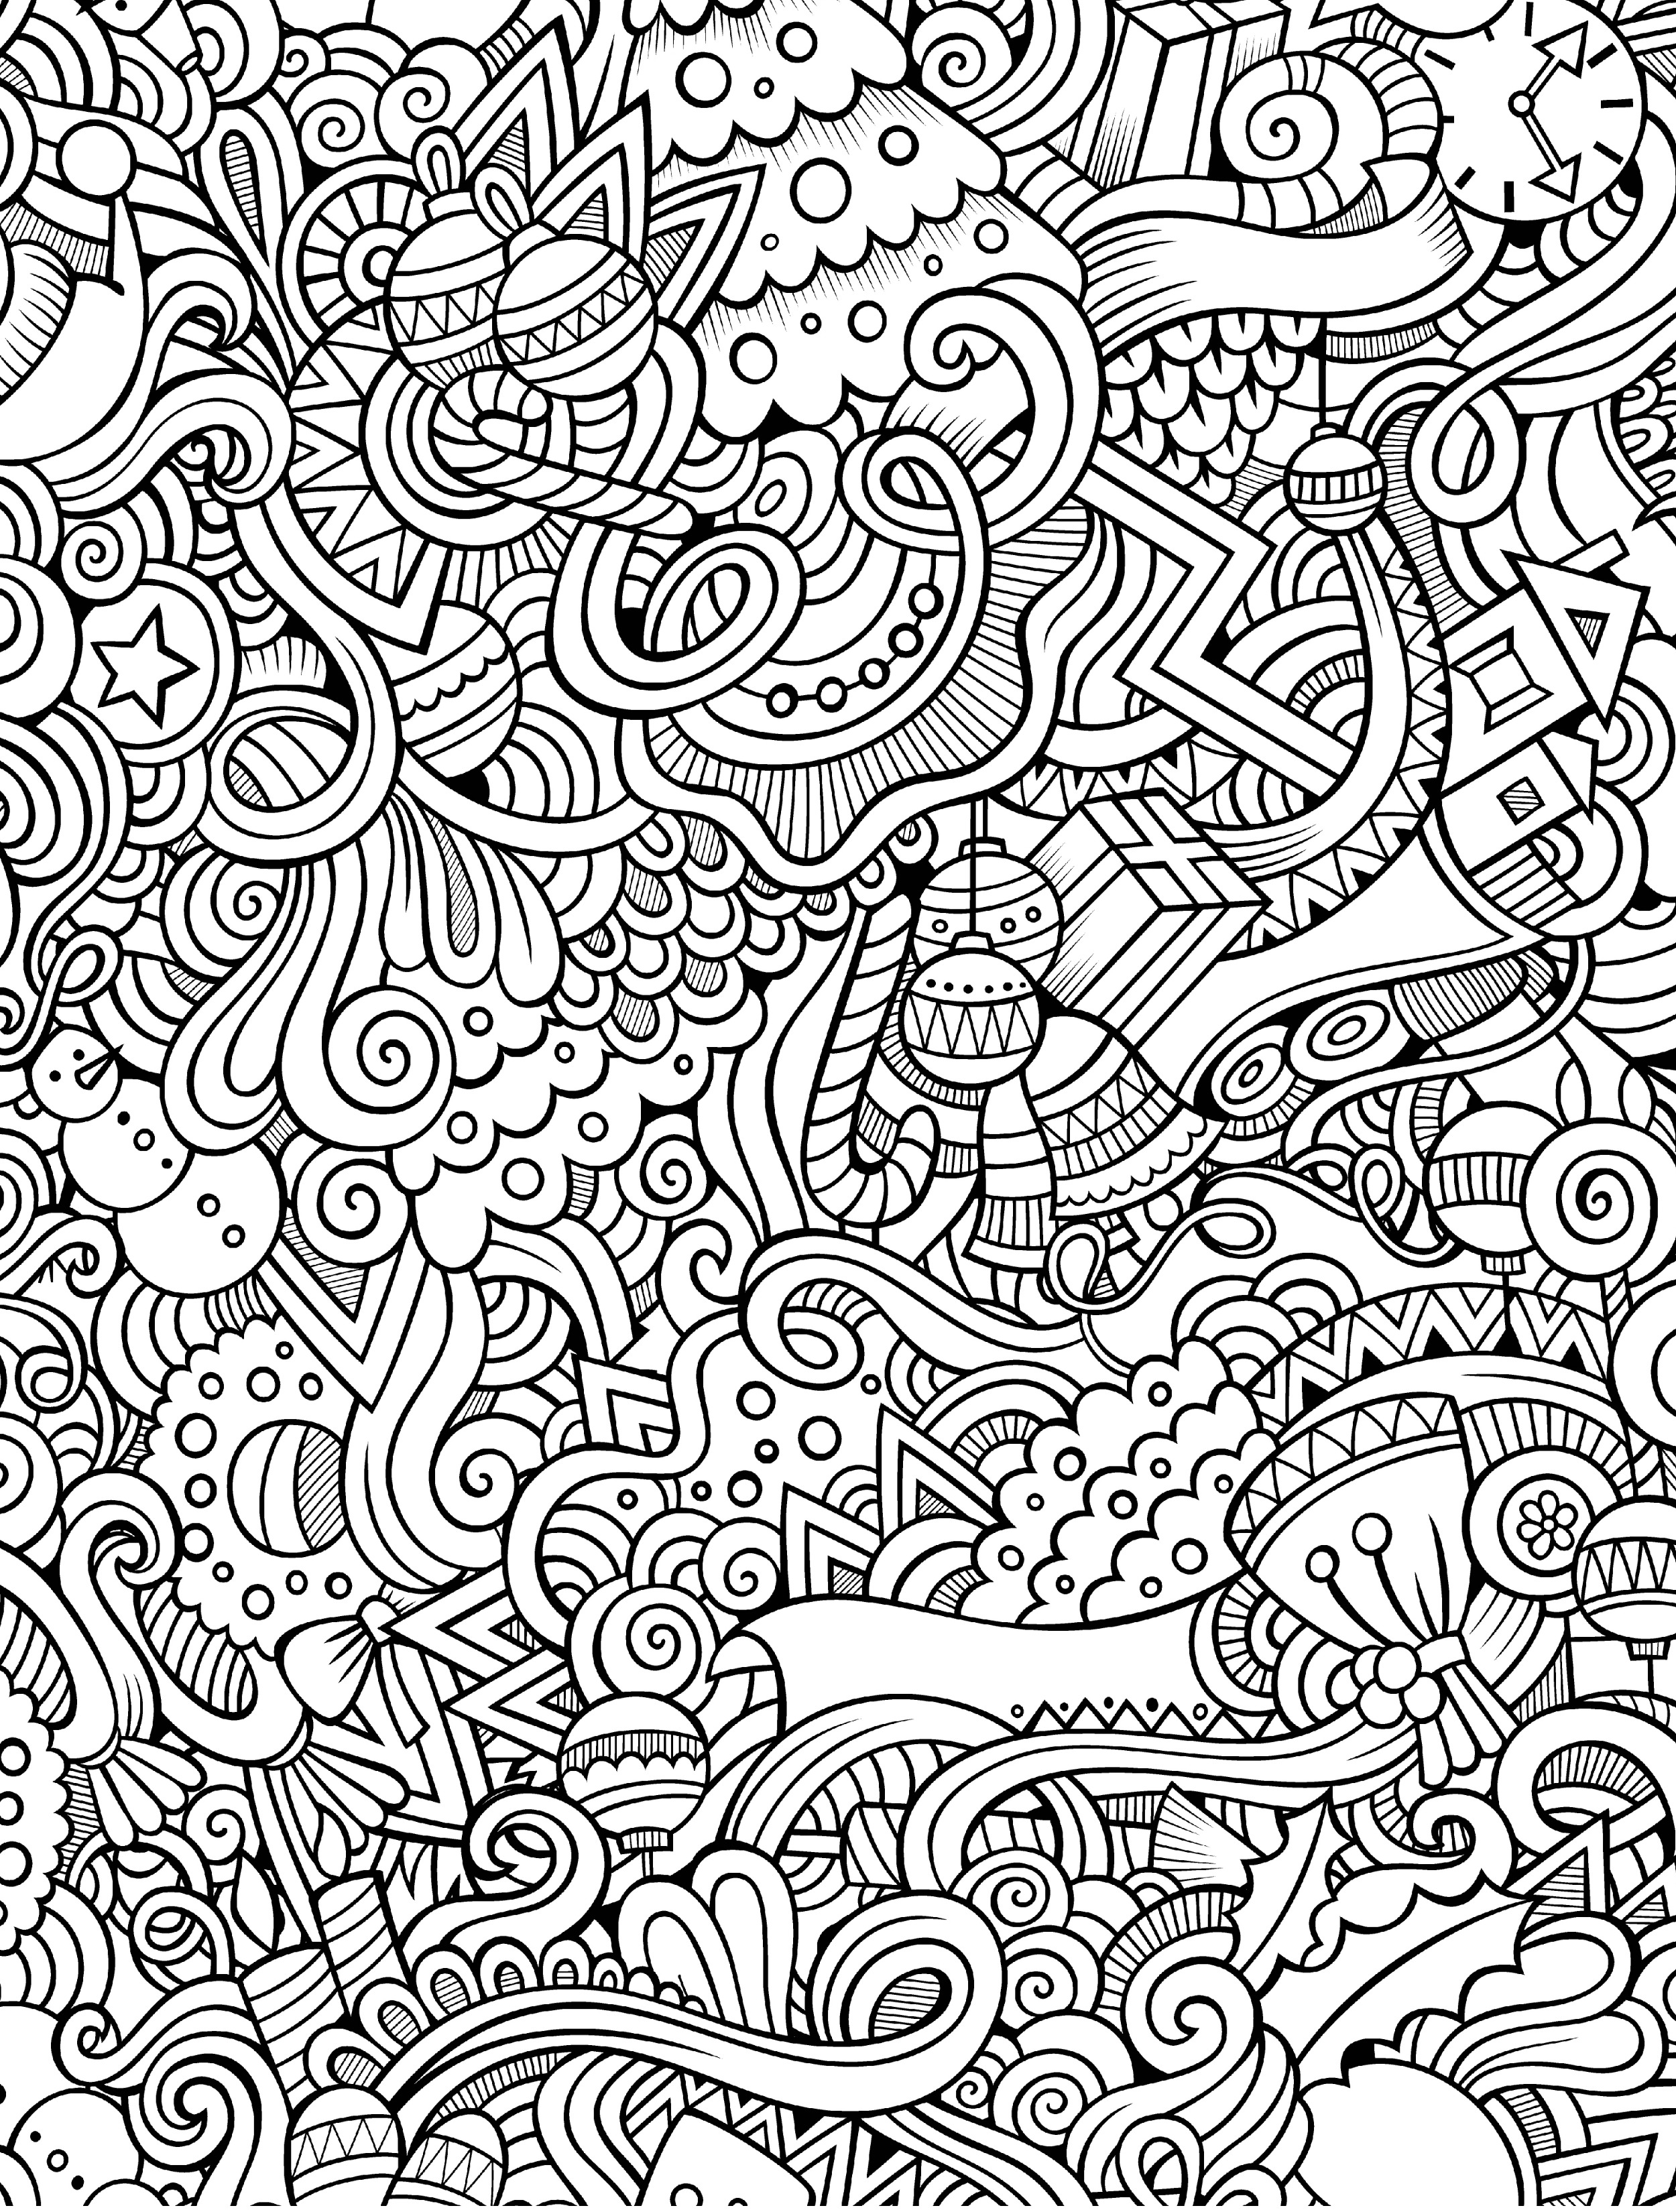 2500x3300 Special Coloring Book Download Inspiring Desig